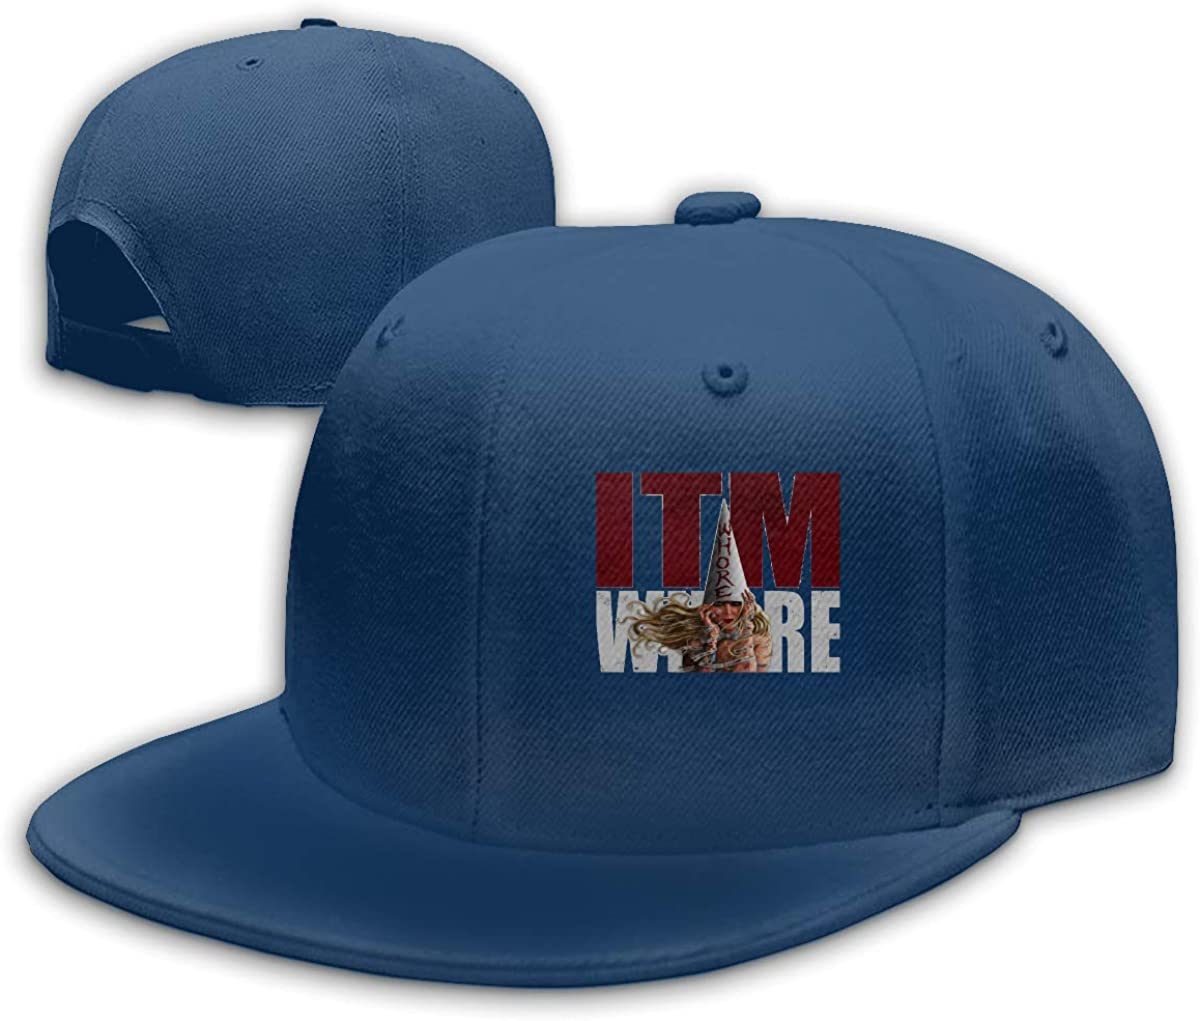 in This Moment Maria Brink Whore Adjustable Denim Hats